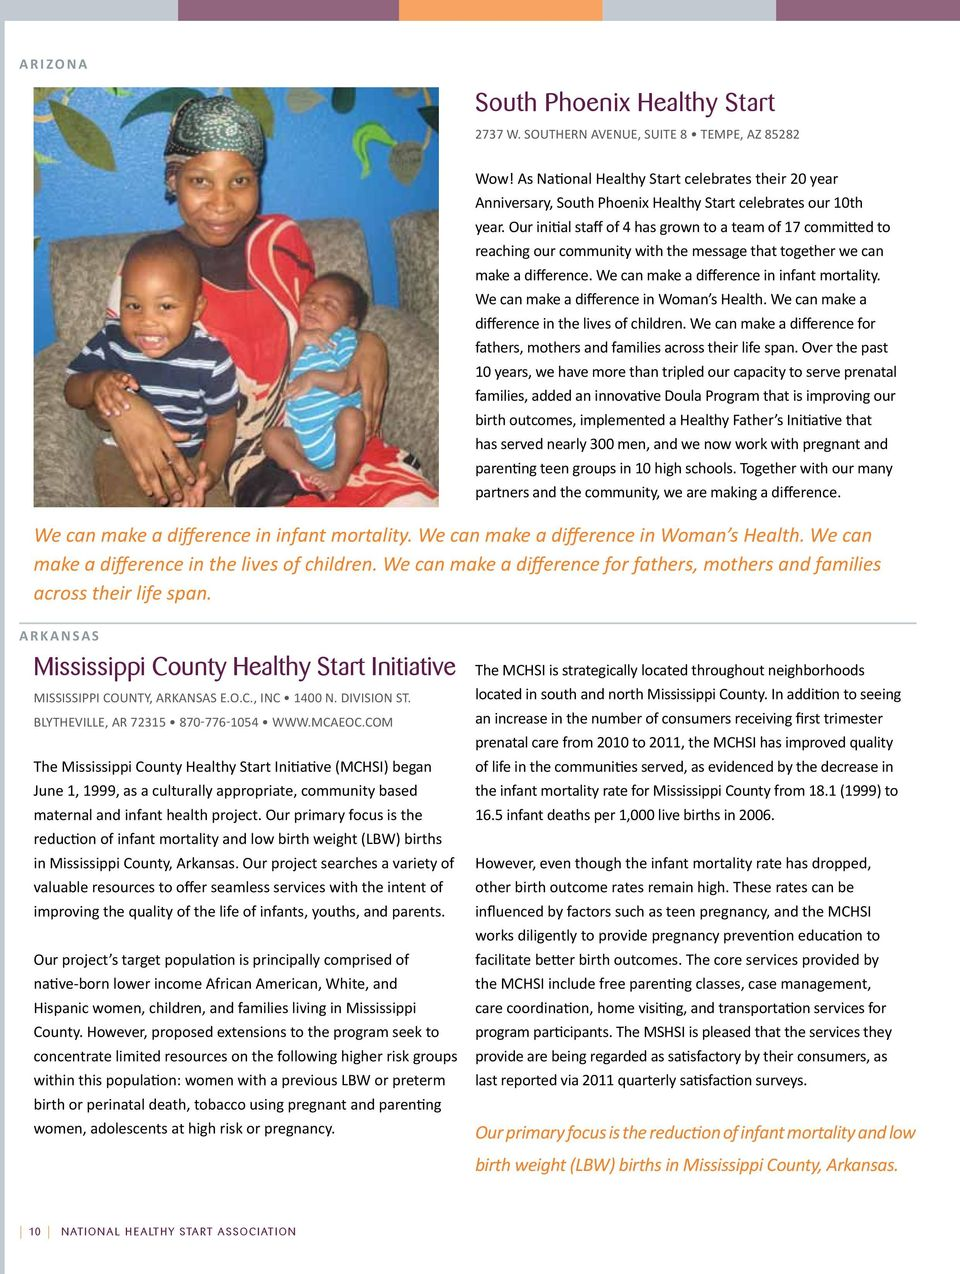 com The Mississippi County Healthy Start Initiative (MCHSI) began June 1, 1999, as a culturally appropriate, community based maternal and infant health project.